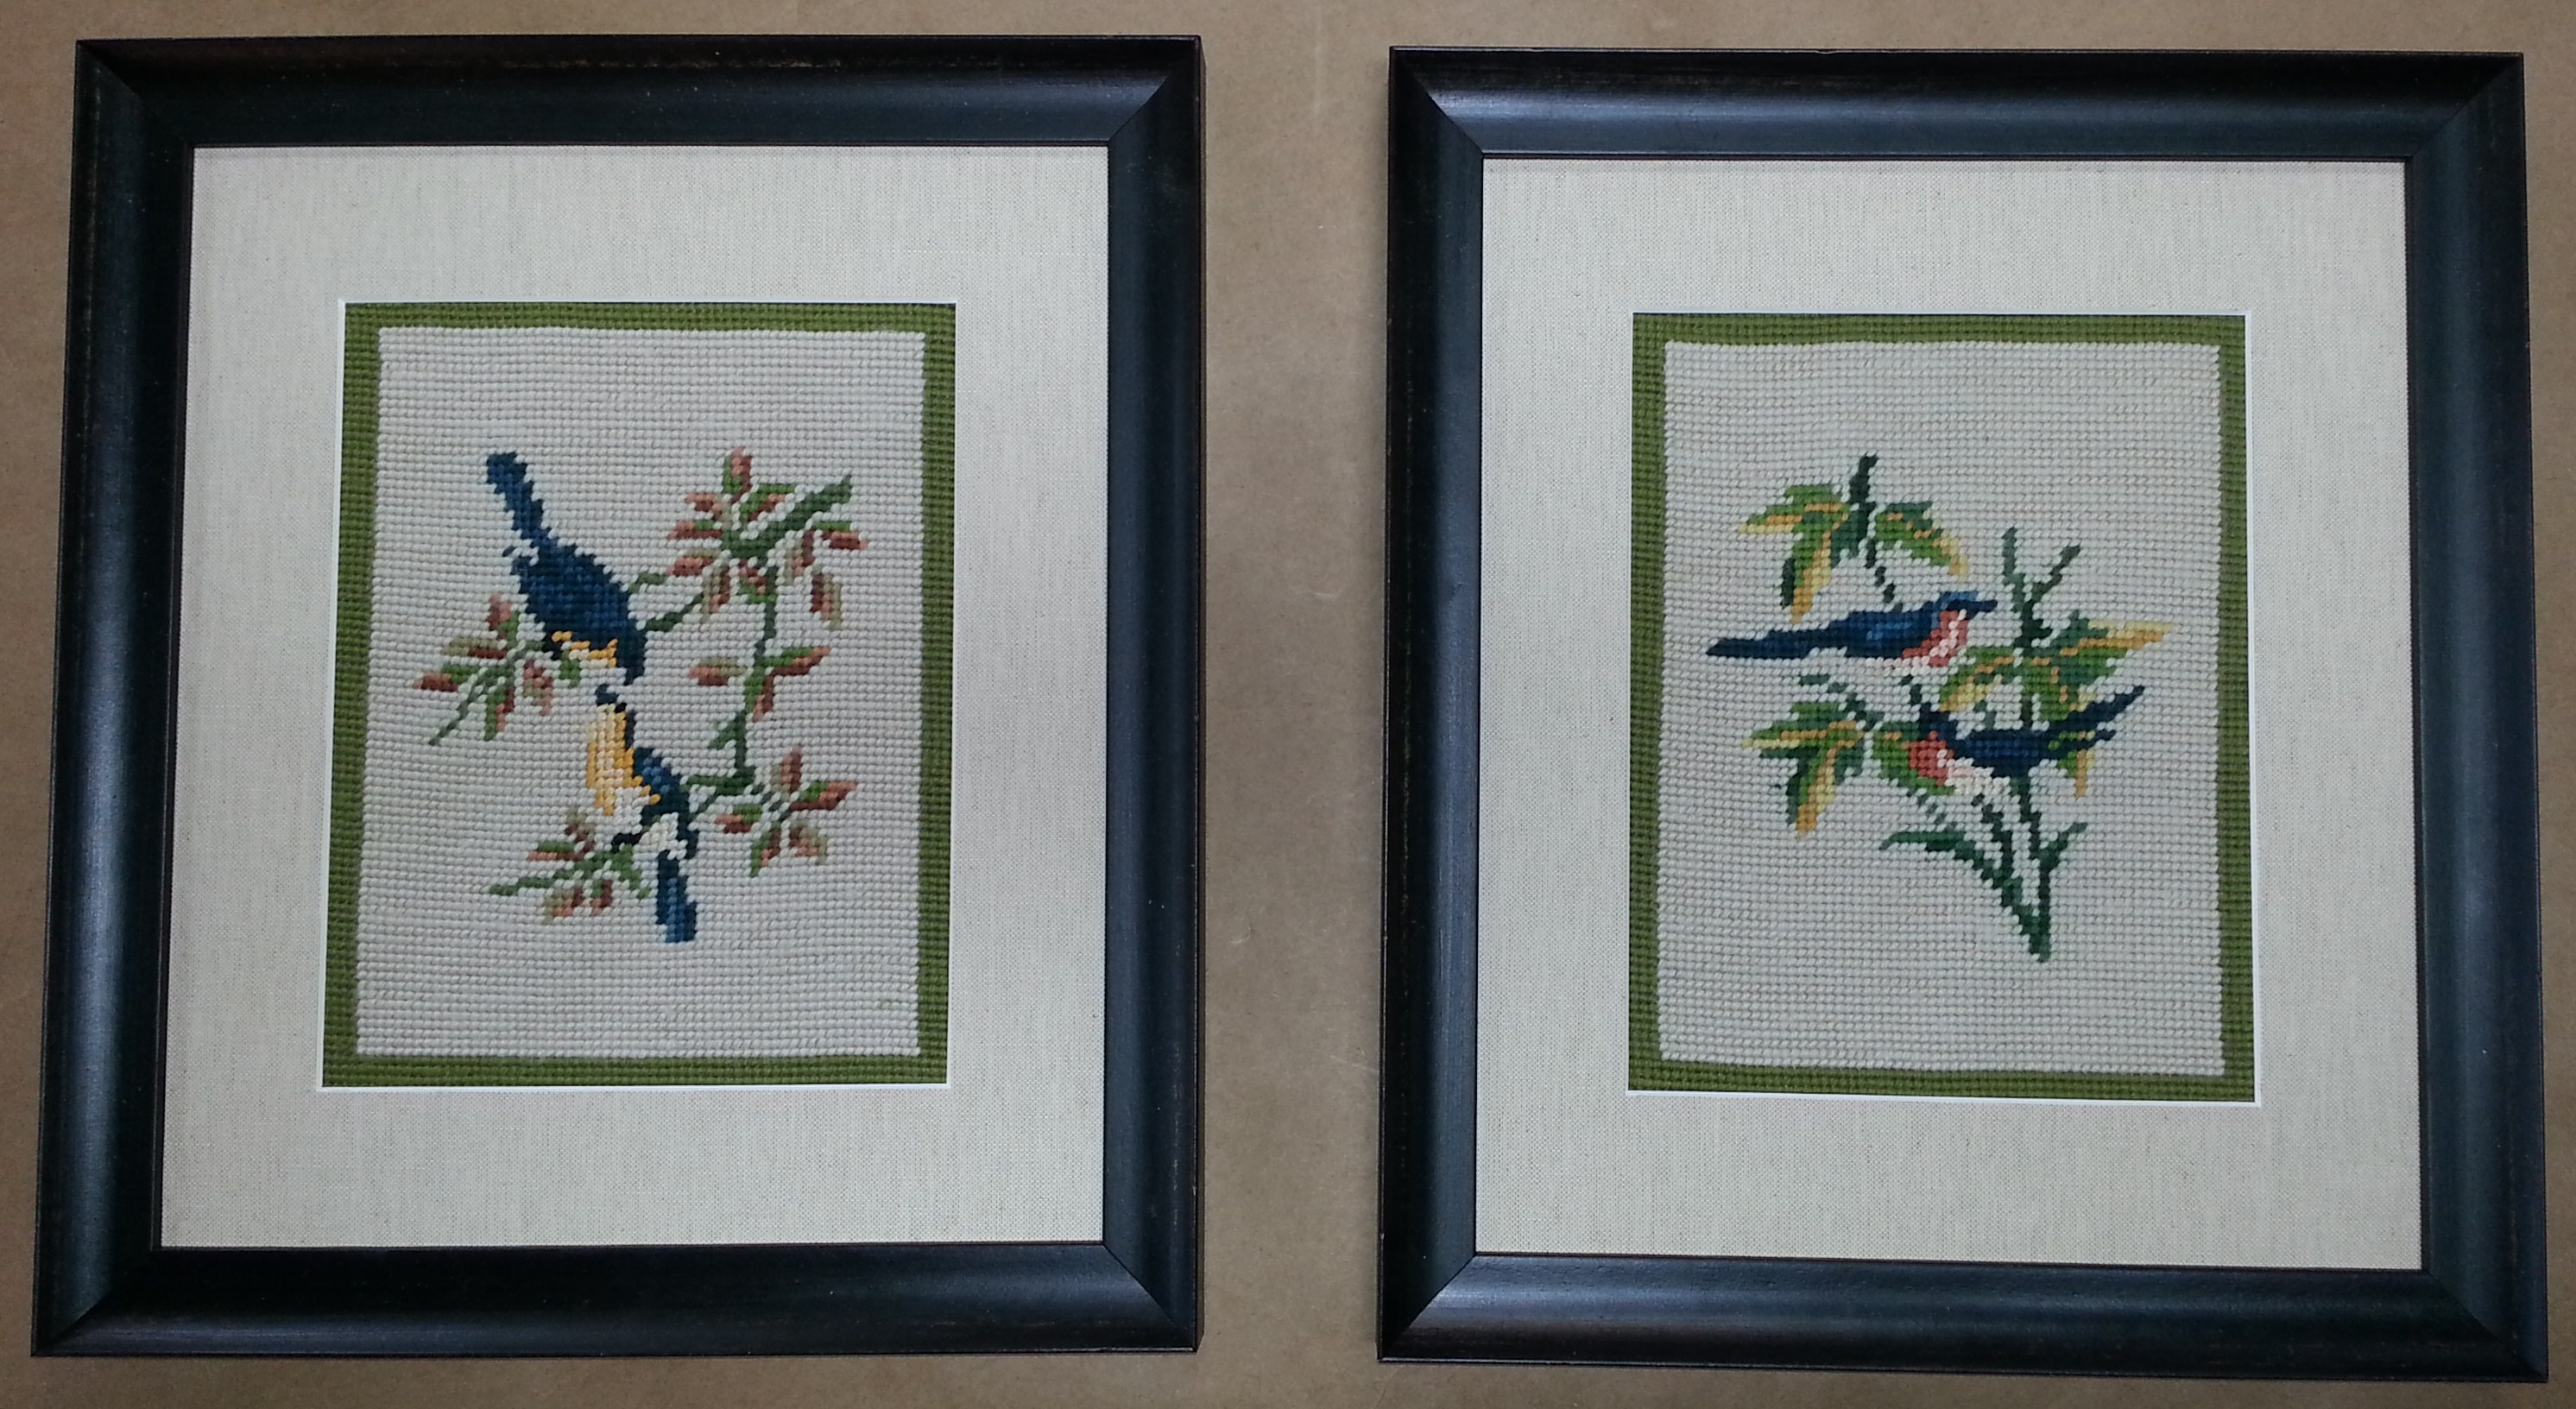 Cross Stitch Frame Columbia Frame Shop